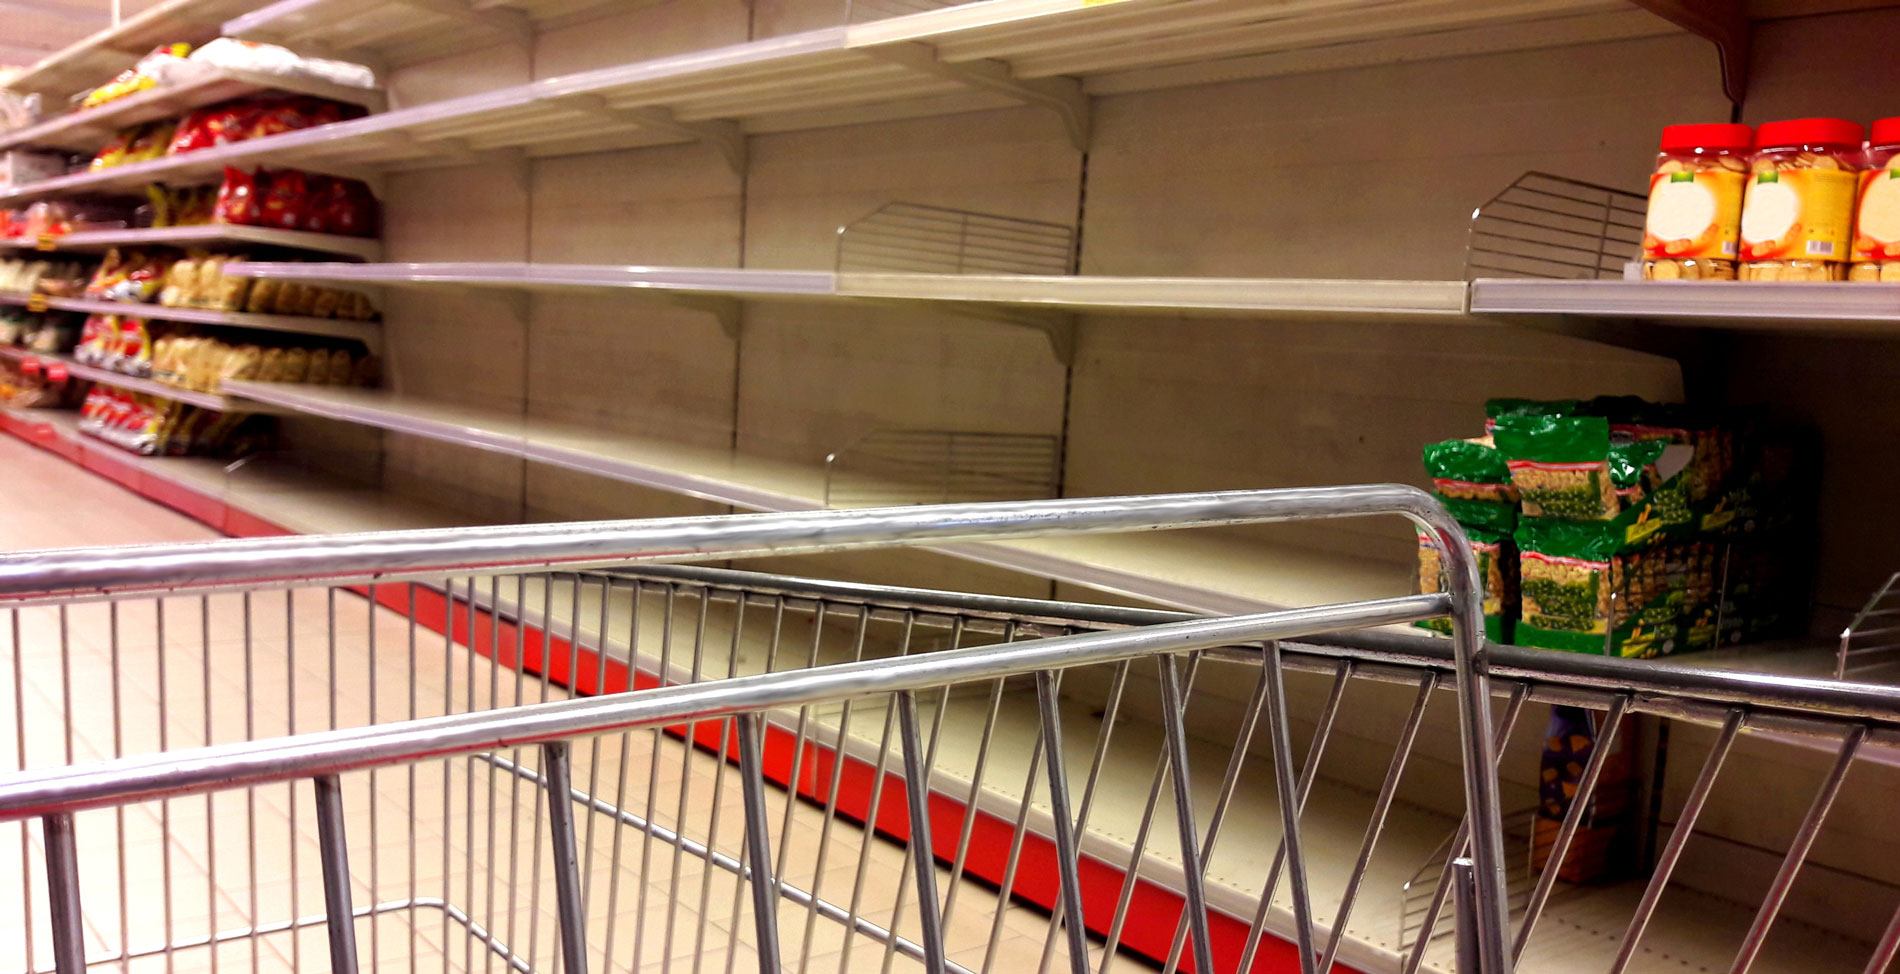 empty food shelves